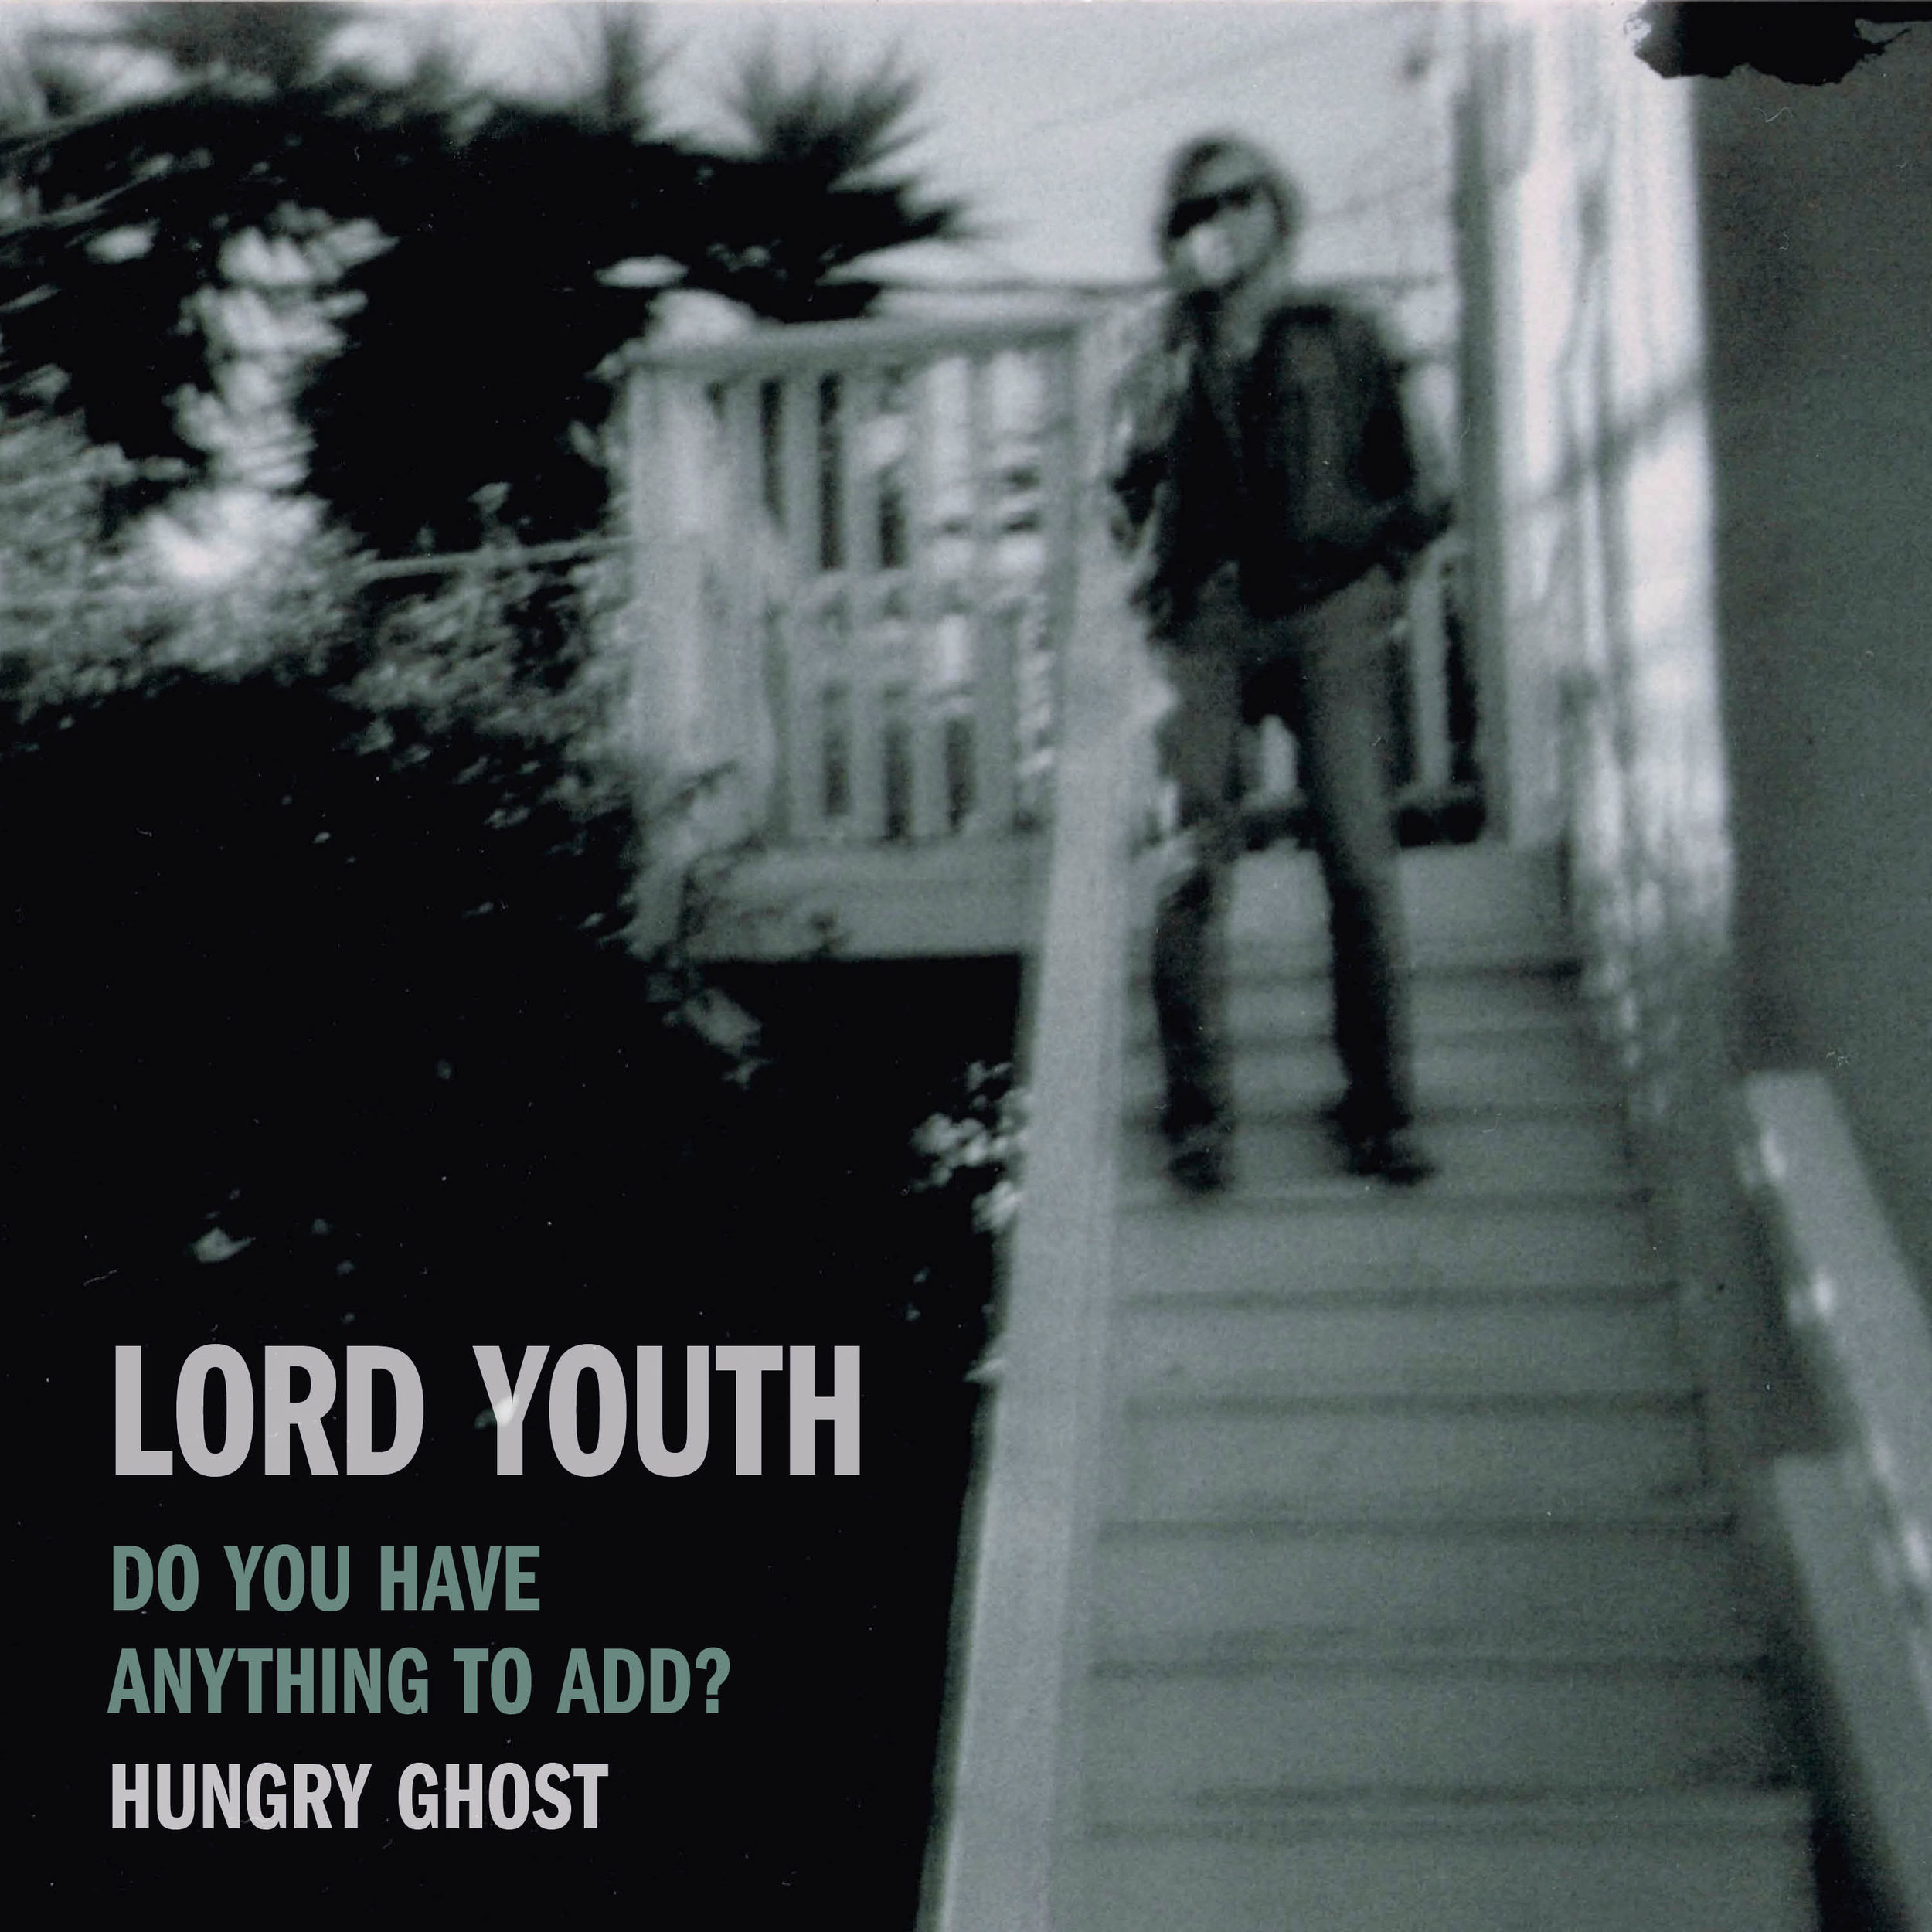 cover_BBI0308_LORD YOUTH_Do You Have Anything To Add.jpg